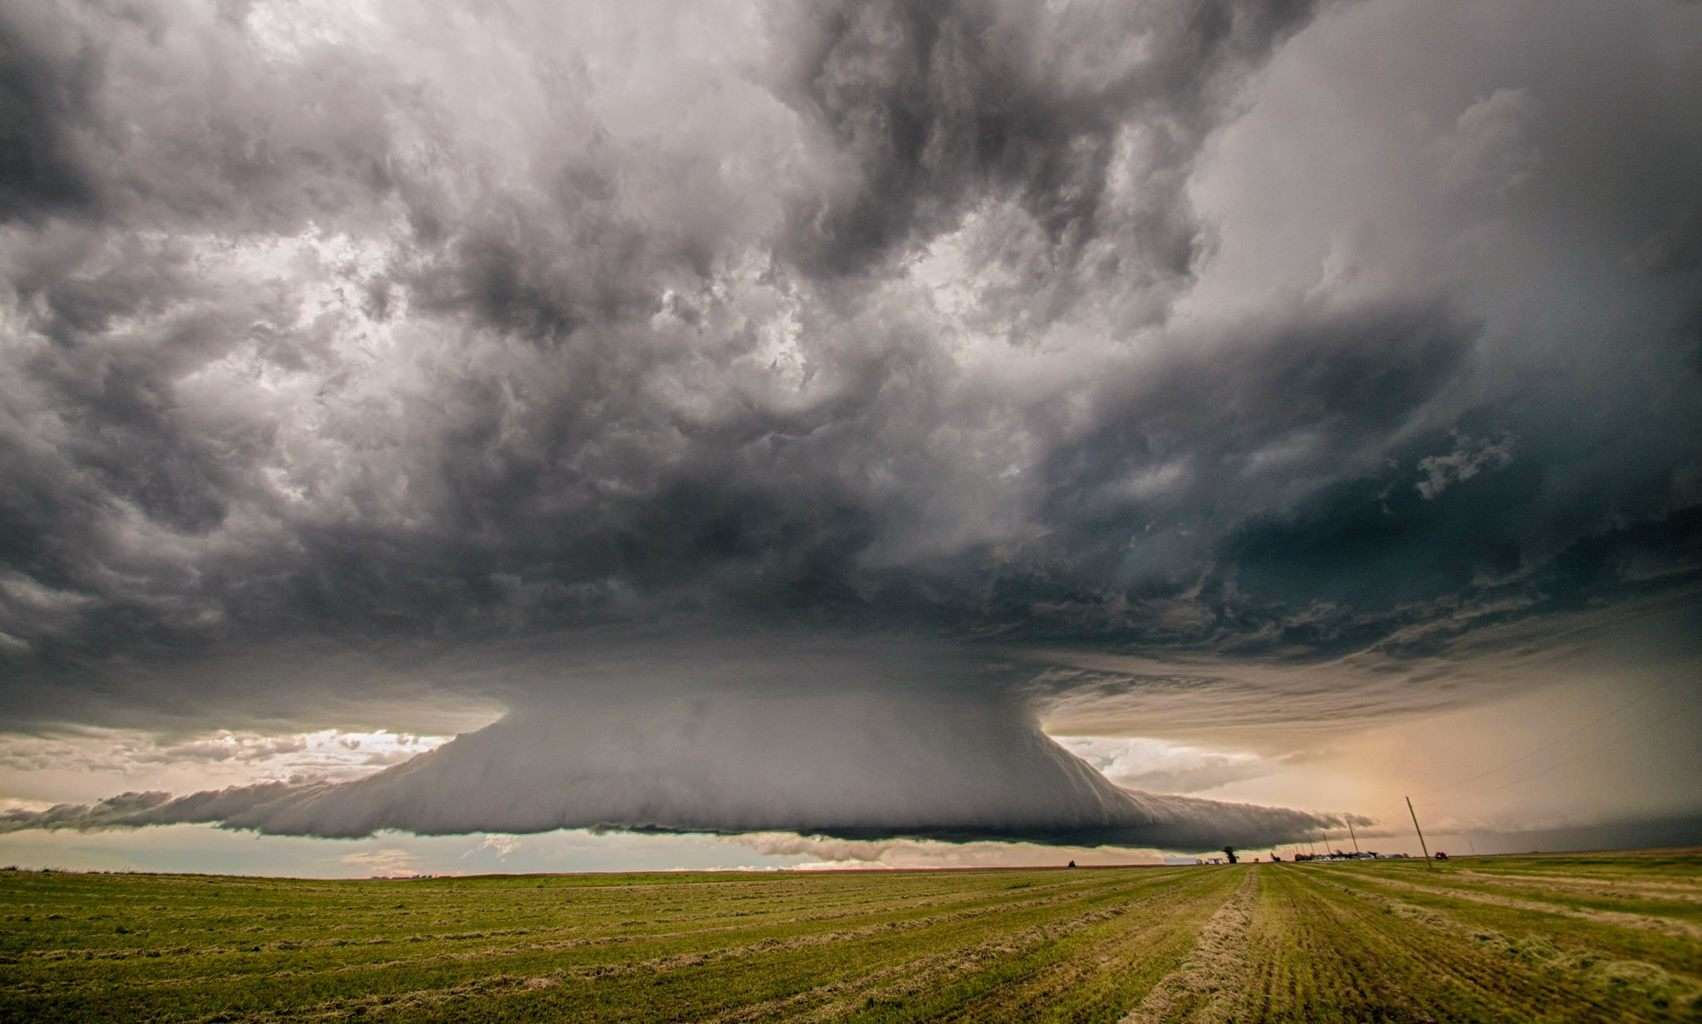 Another, slightly earlier shot of the incredible western NE supercell June 5, 2010